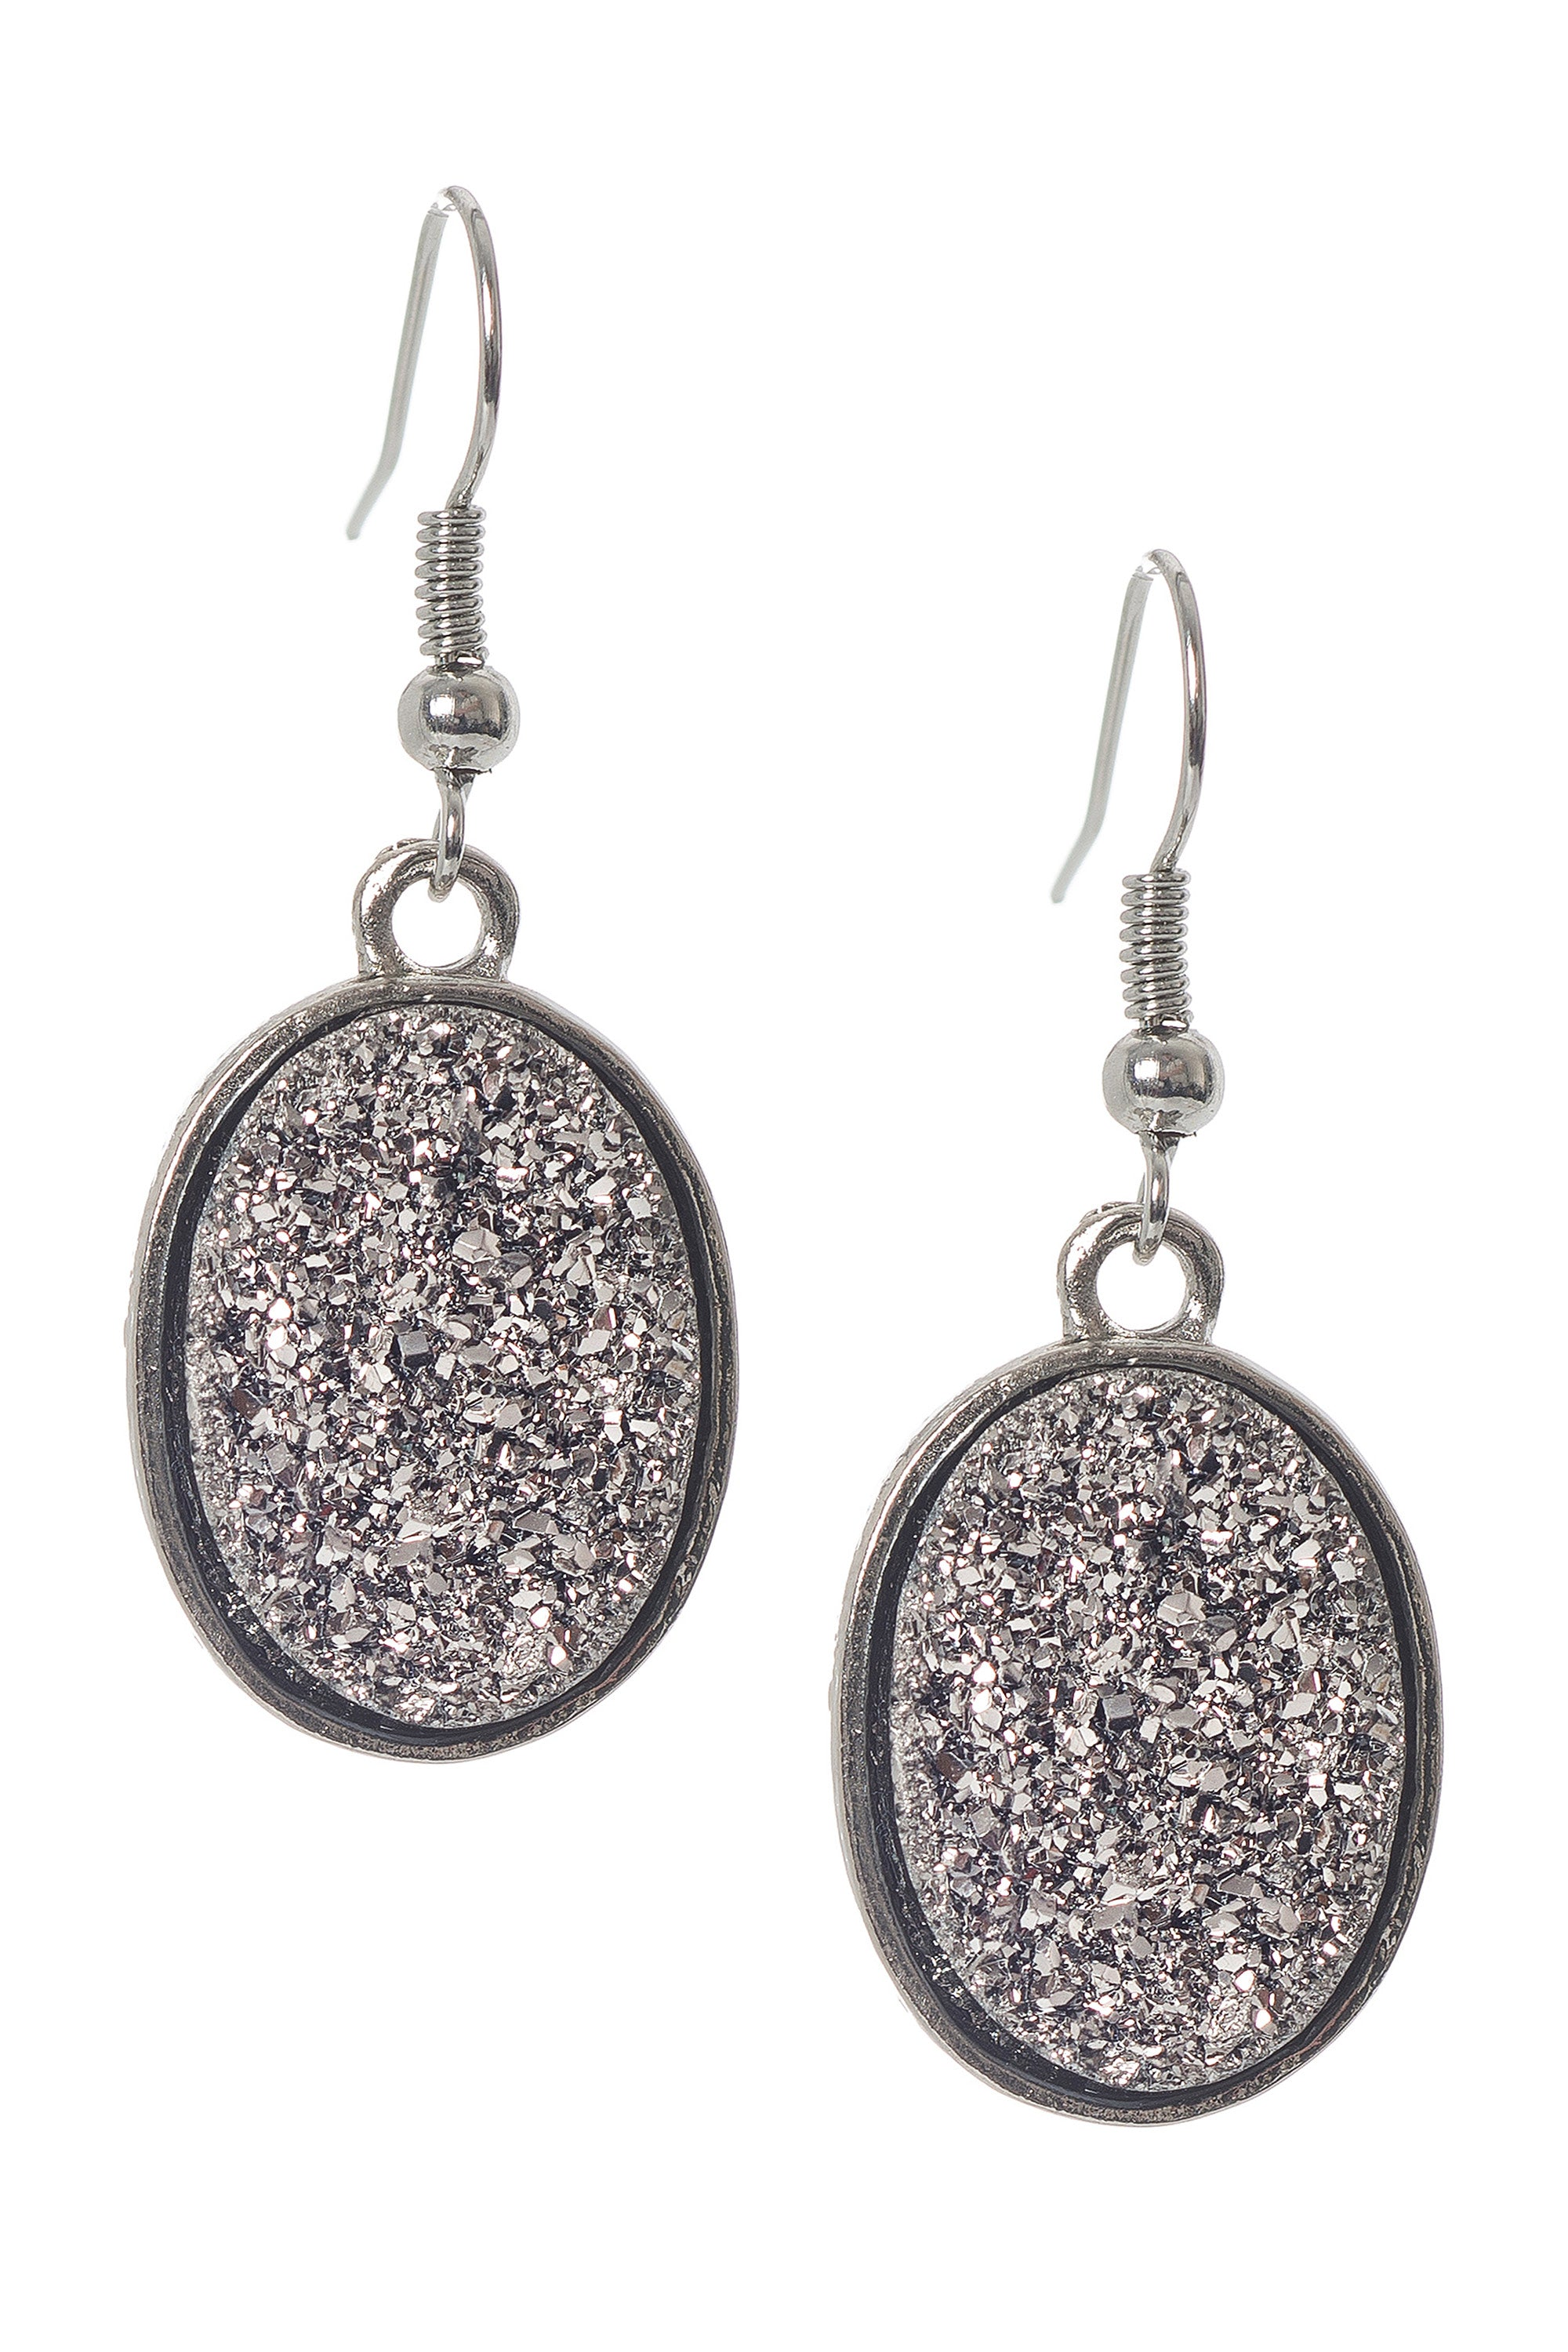 Type 2 Silver Mining Earrings